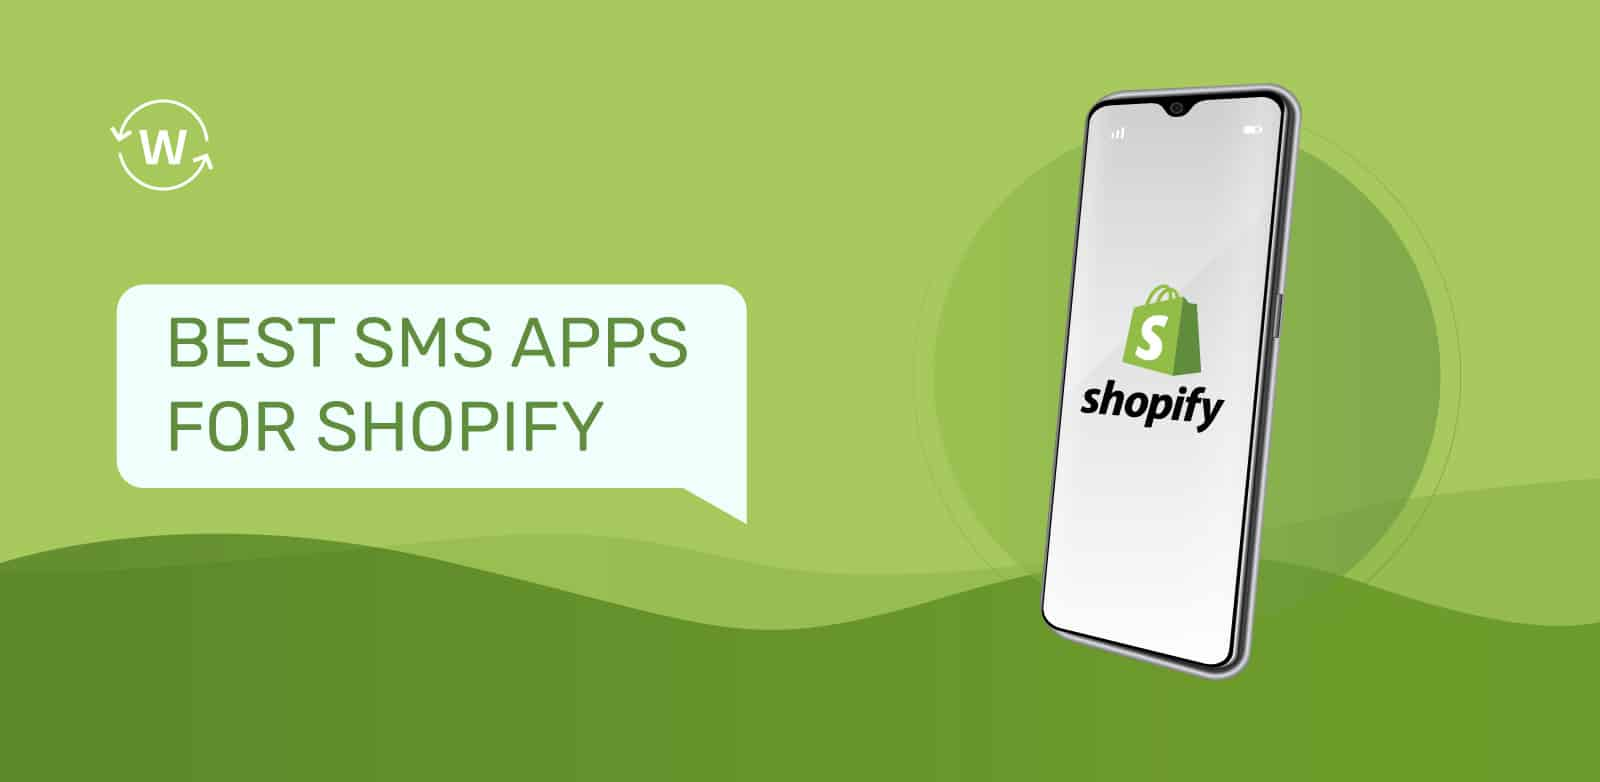 sms-apps-shopify